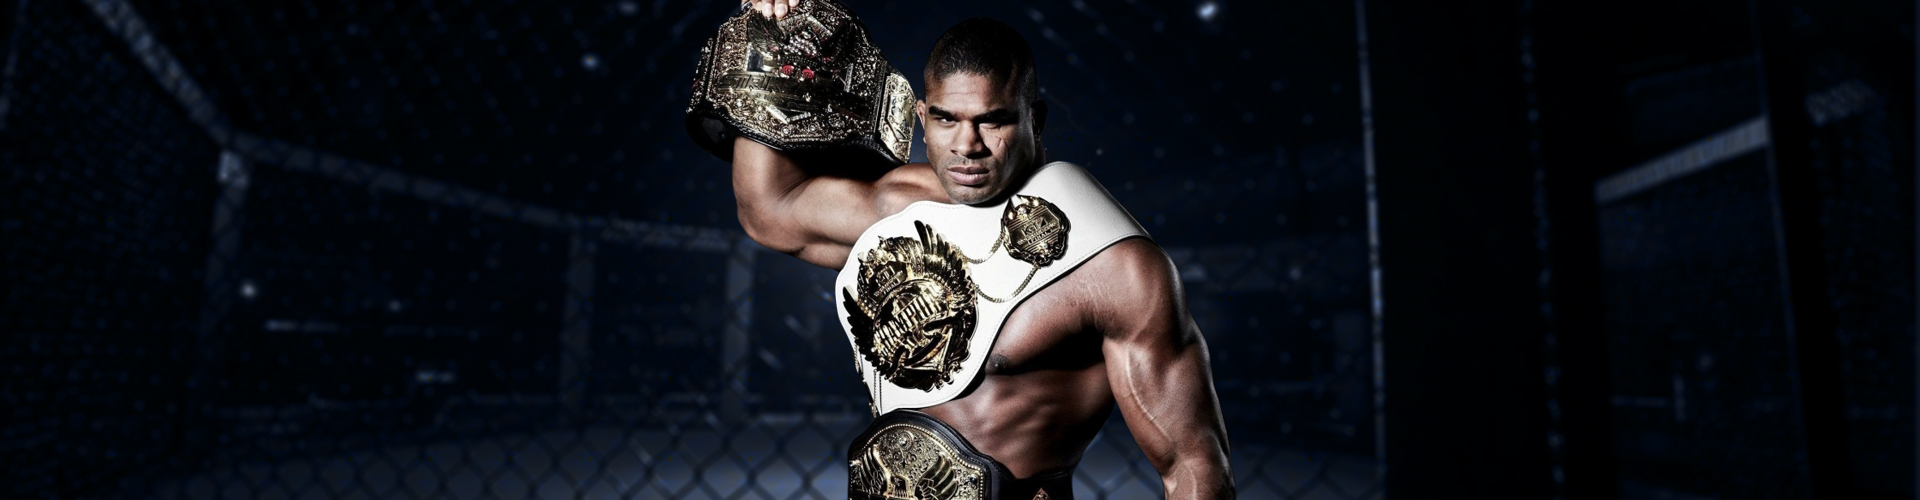 Alistair Overeem Bruce Merrin S Celebrity Speakers